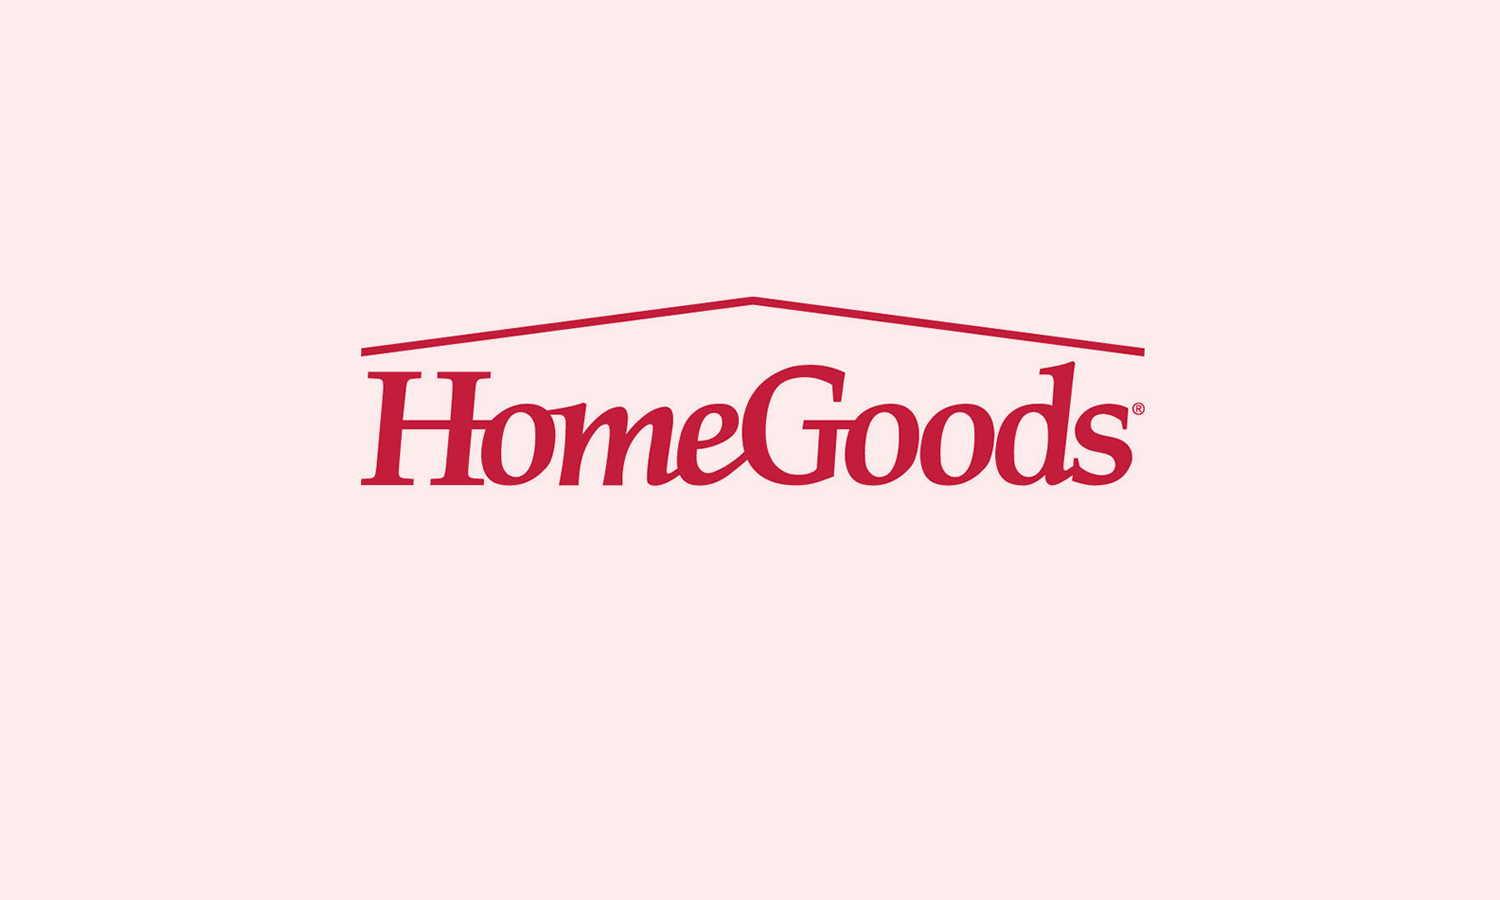 HomeGoods and Homesense fundraising campaign brings in $2.9 million during COVID-19 pandemic.